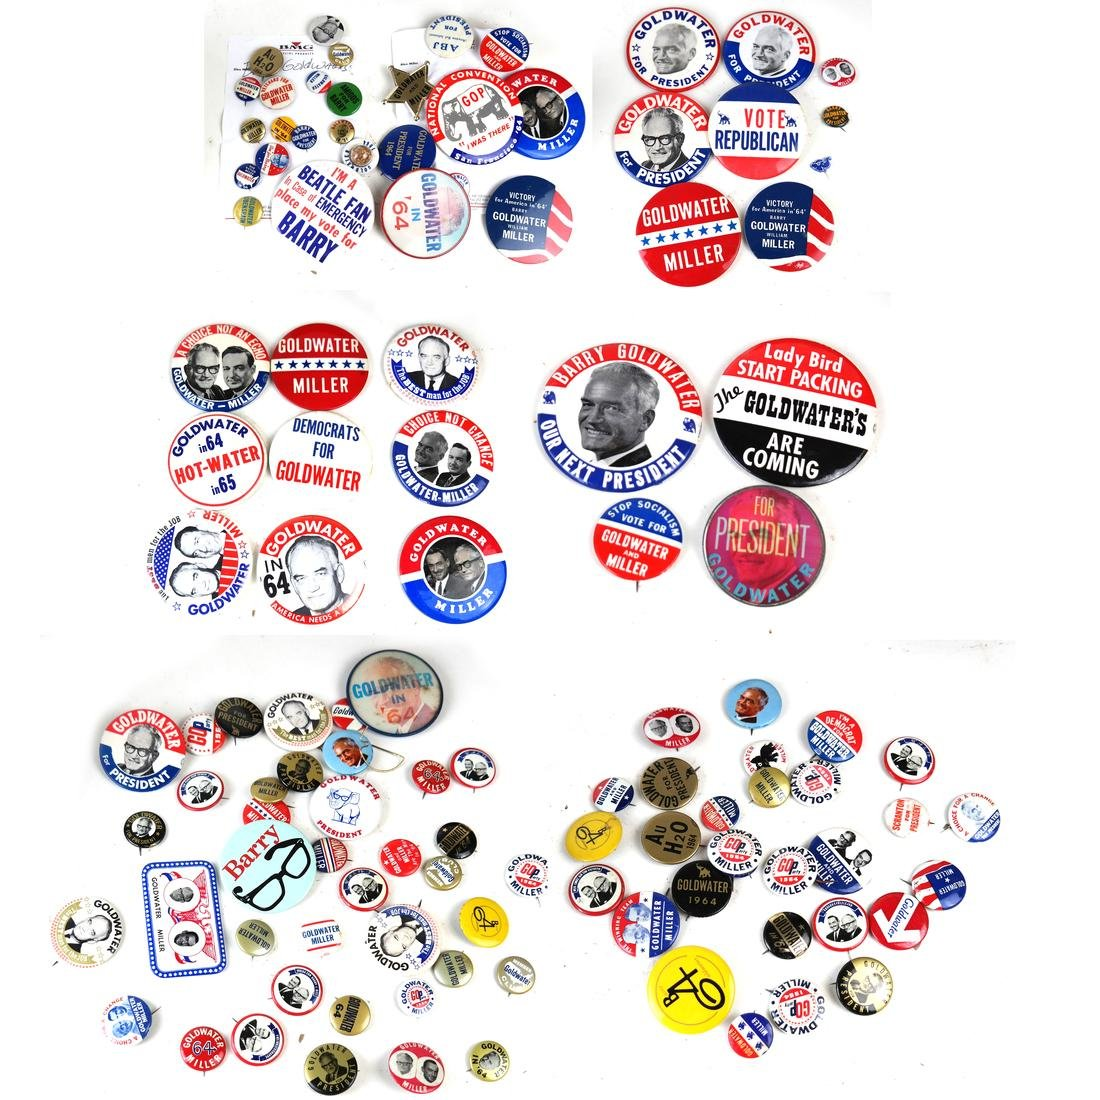 LARGE GROUP OF BARRY GOLDWATER 1964 CAMPAIGN BUTTTONS